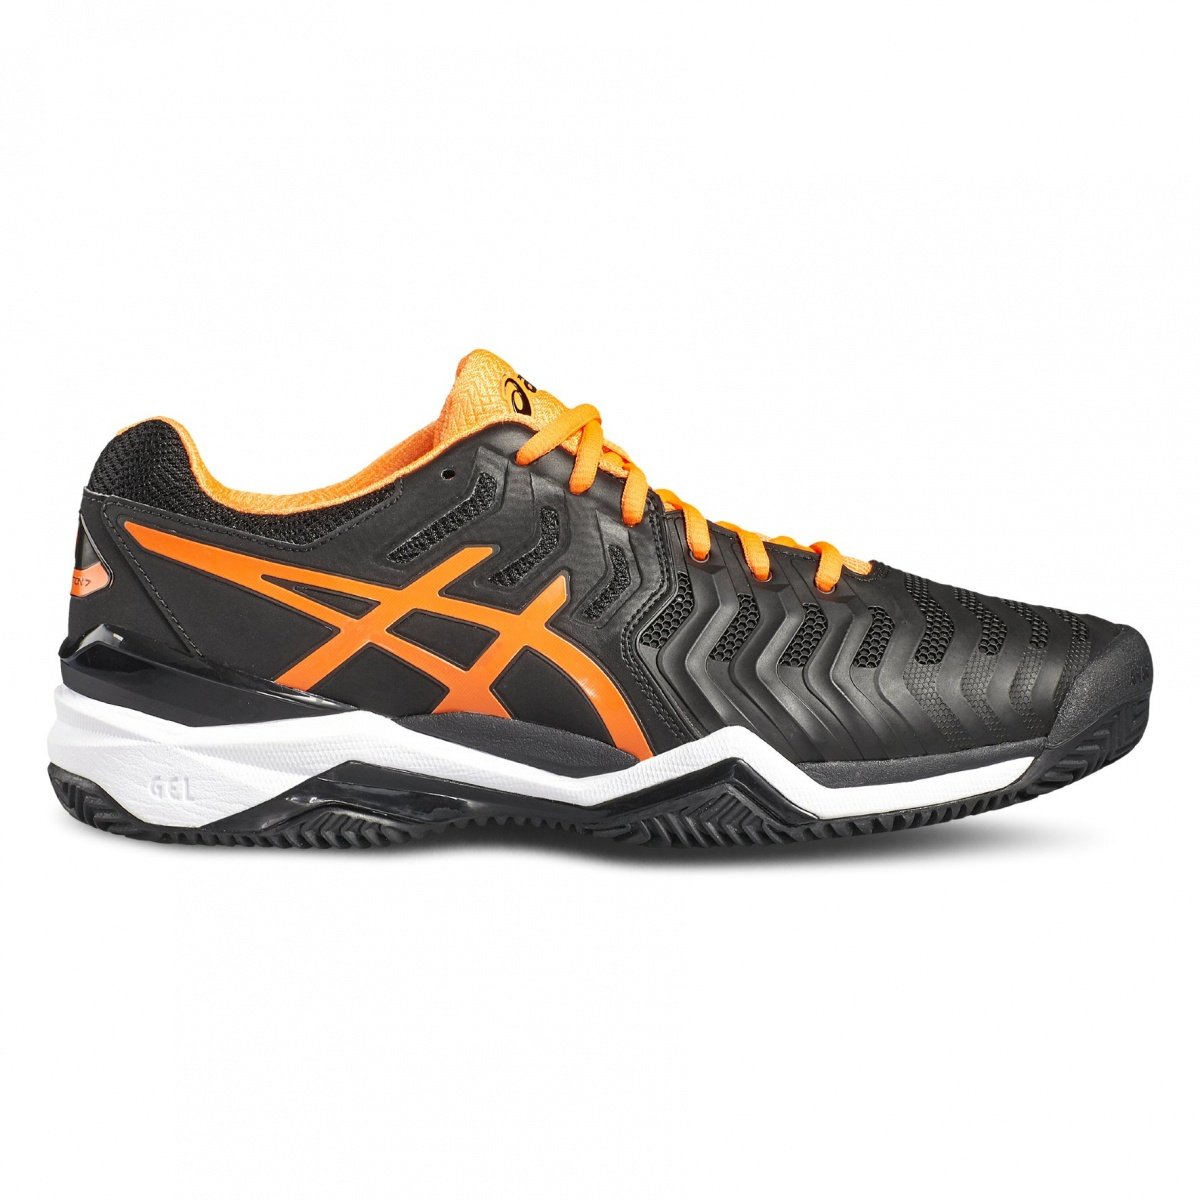 Asics Gel Resolution 7 Clay schwarzorange Tennisschuhe